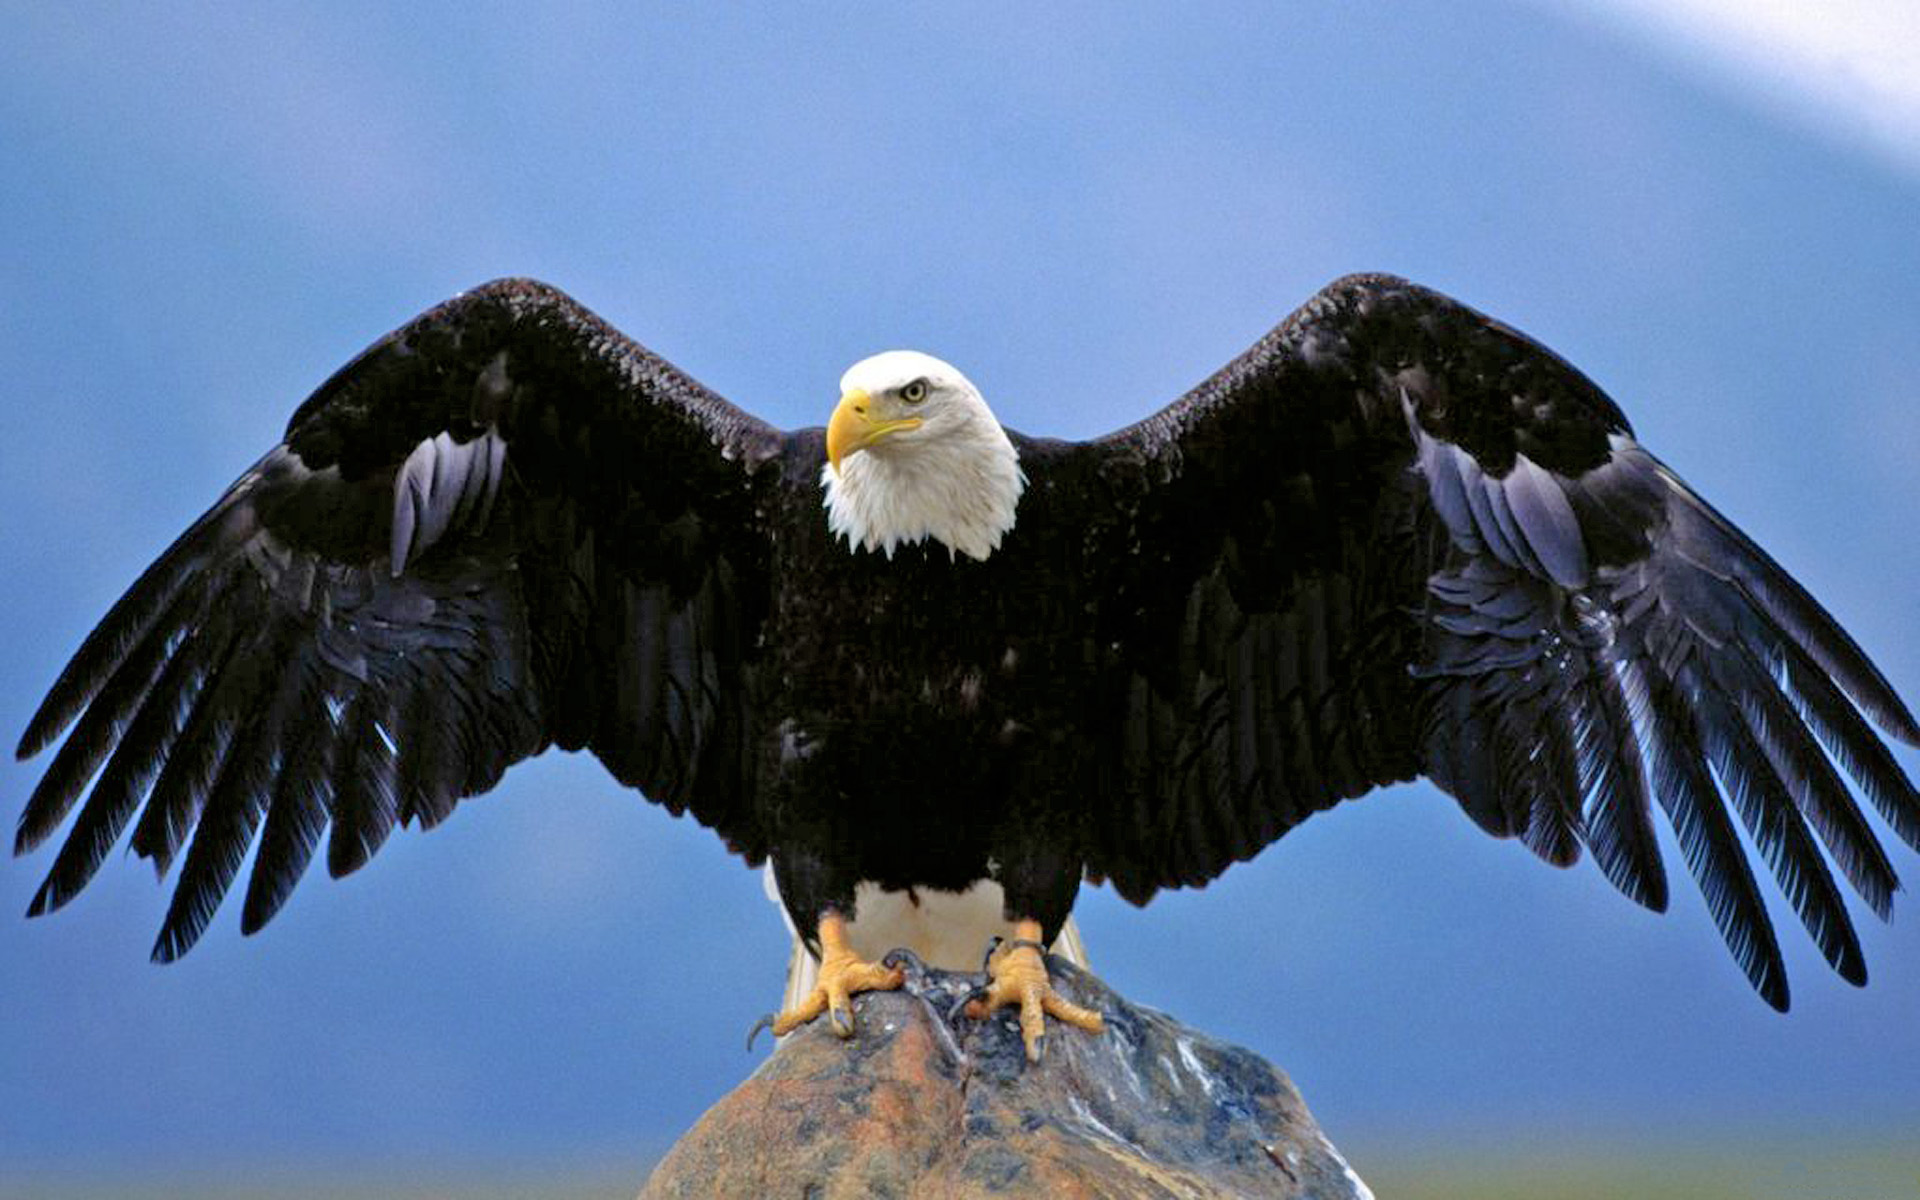 Free Wallpapers Cars And Beautiful Ladies Bald Eagle Spread Wings Desktop Hd Wallpaper For Pc Tablet